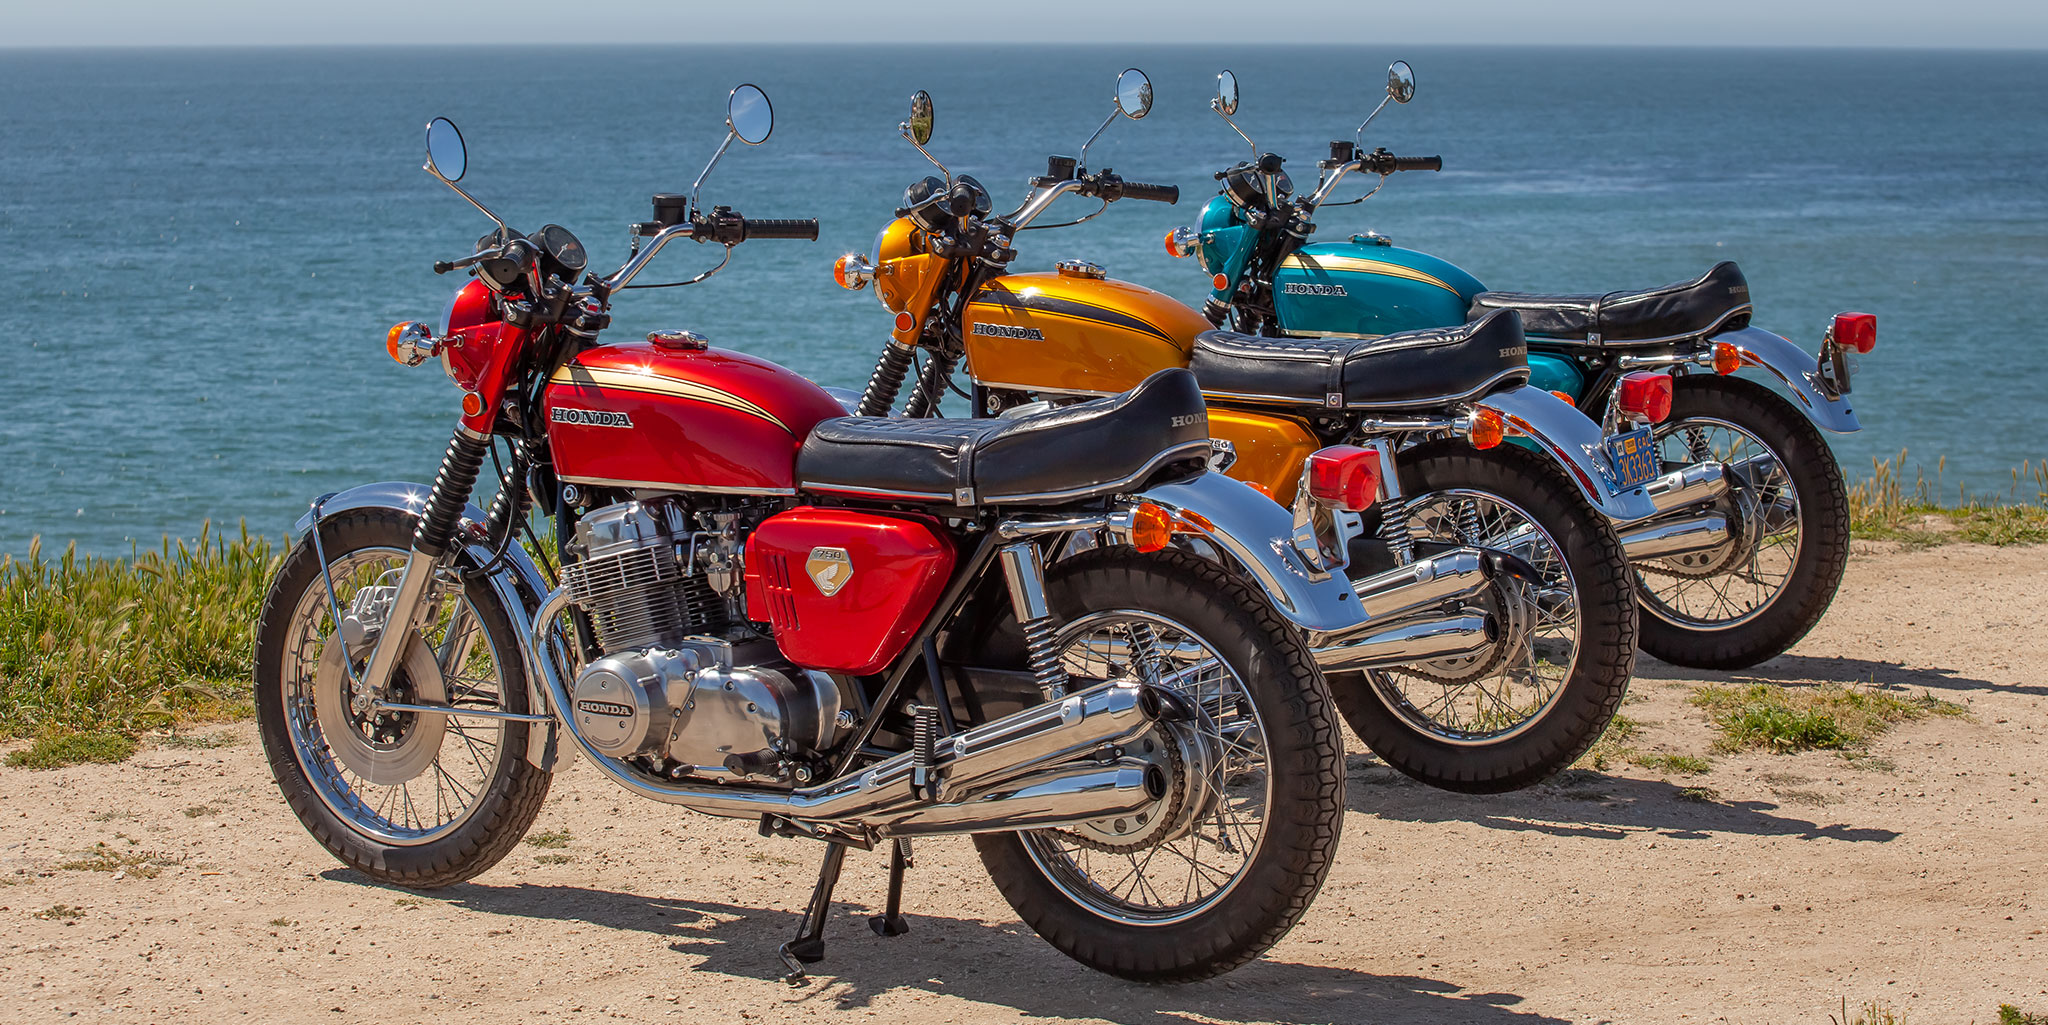 The three 1969 CB750s that I brought to the Quail in 2019